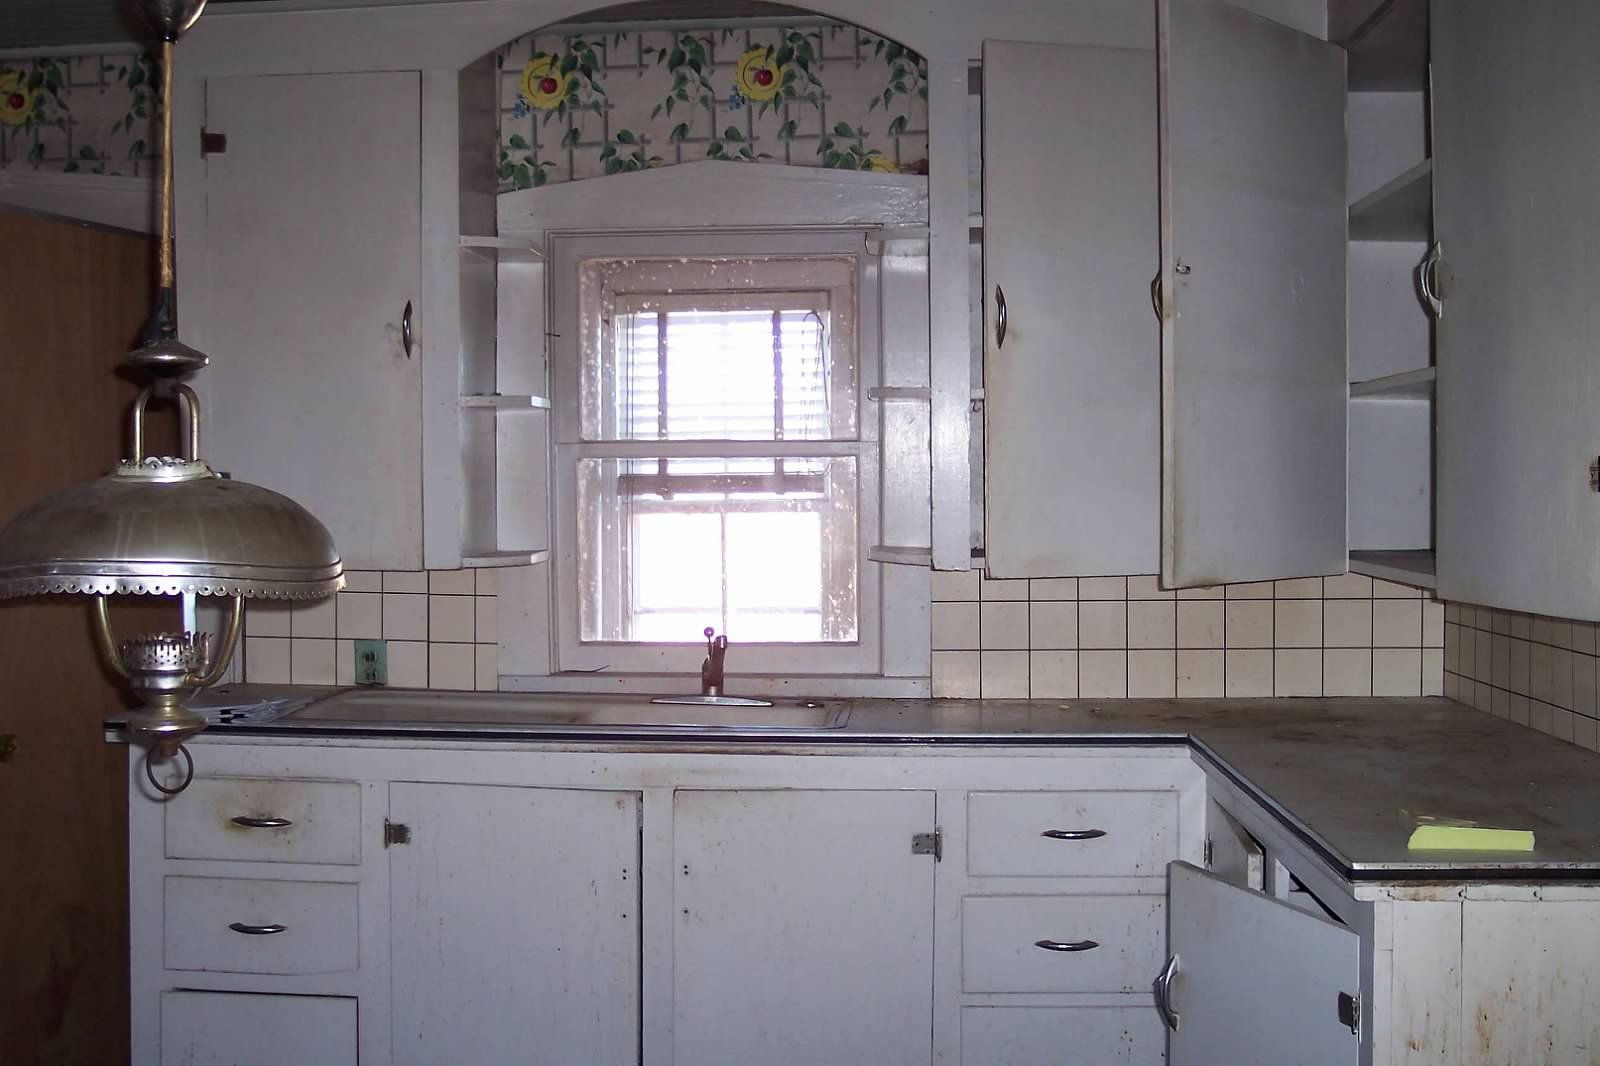 Warrington House Pictures (With images) | Kitchen cabinet ...